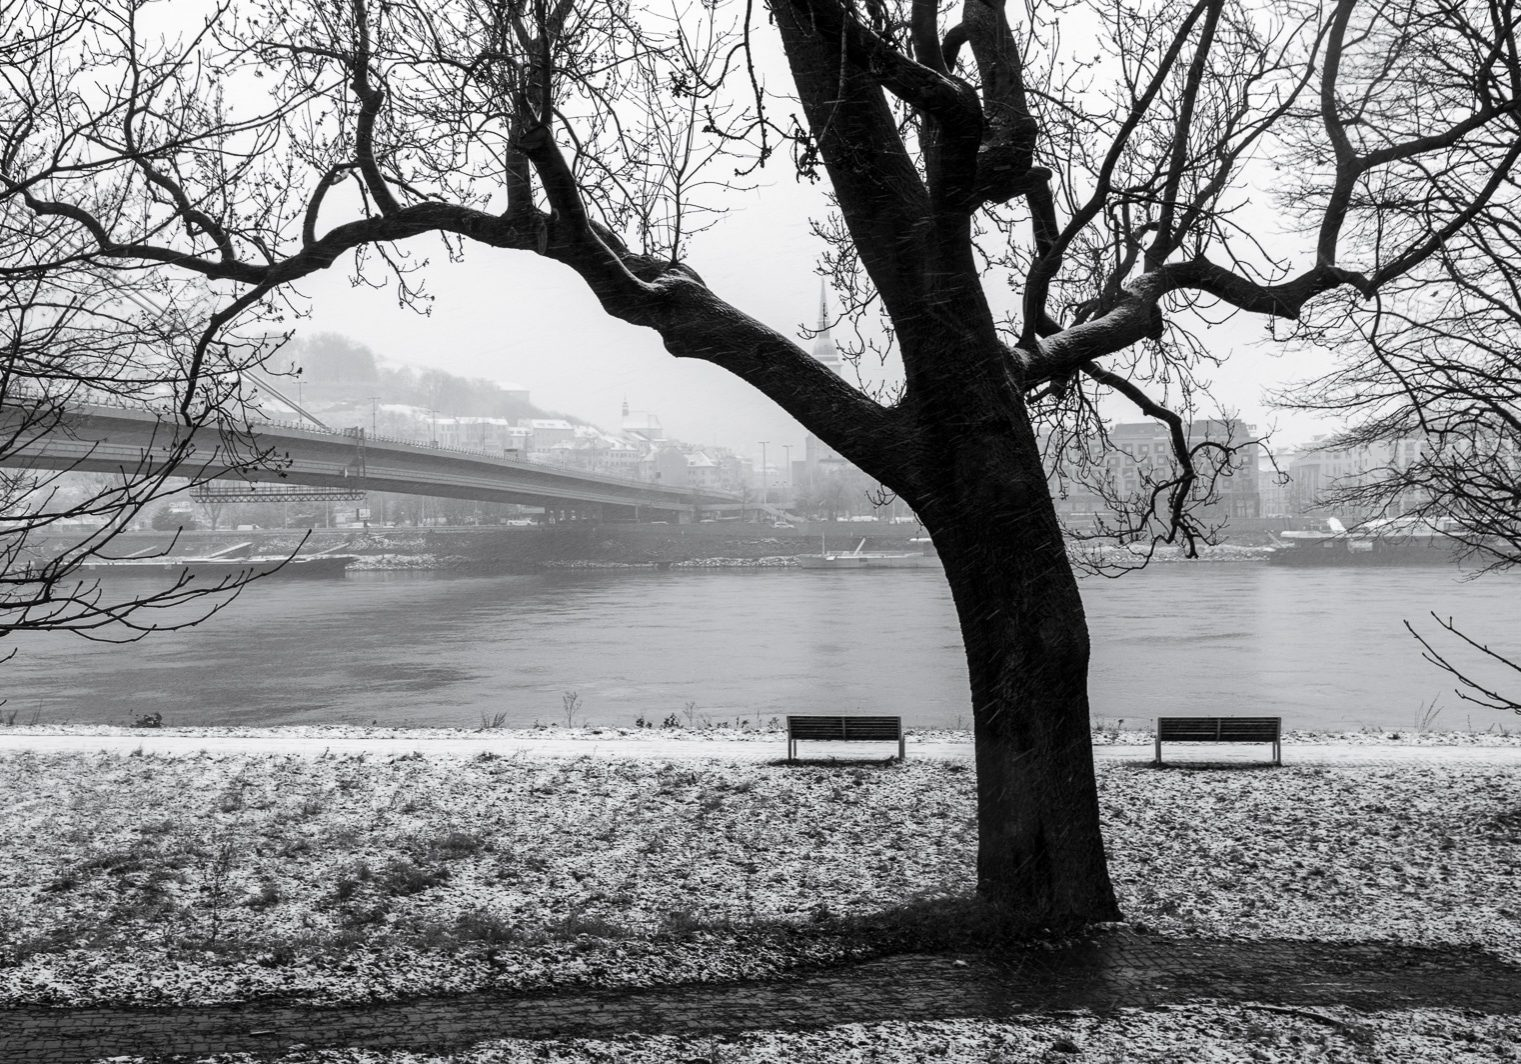 The silhouette of a tree with two benches and Danube river in the background